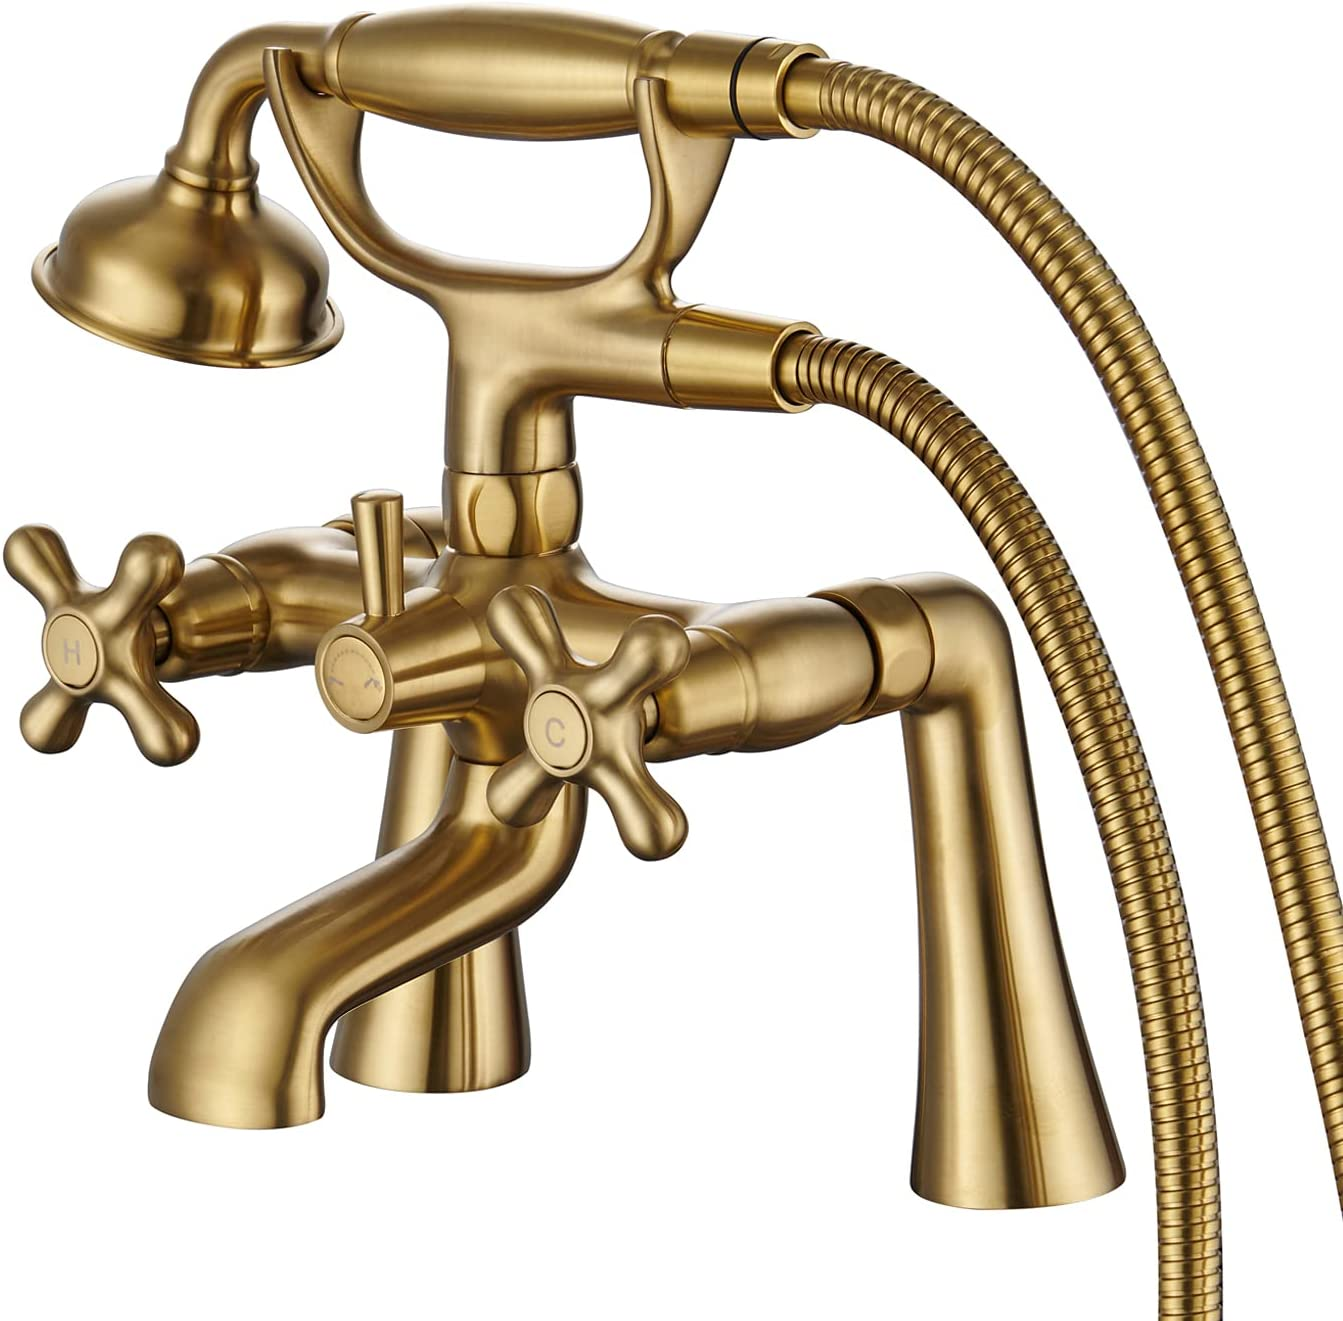 Hanallx Clawfoot Tub lowest price Faucet Deck Filler Brushed Gold V El Paso Mall Mount